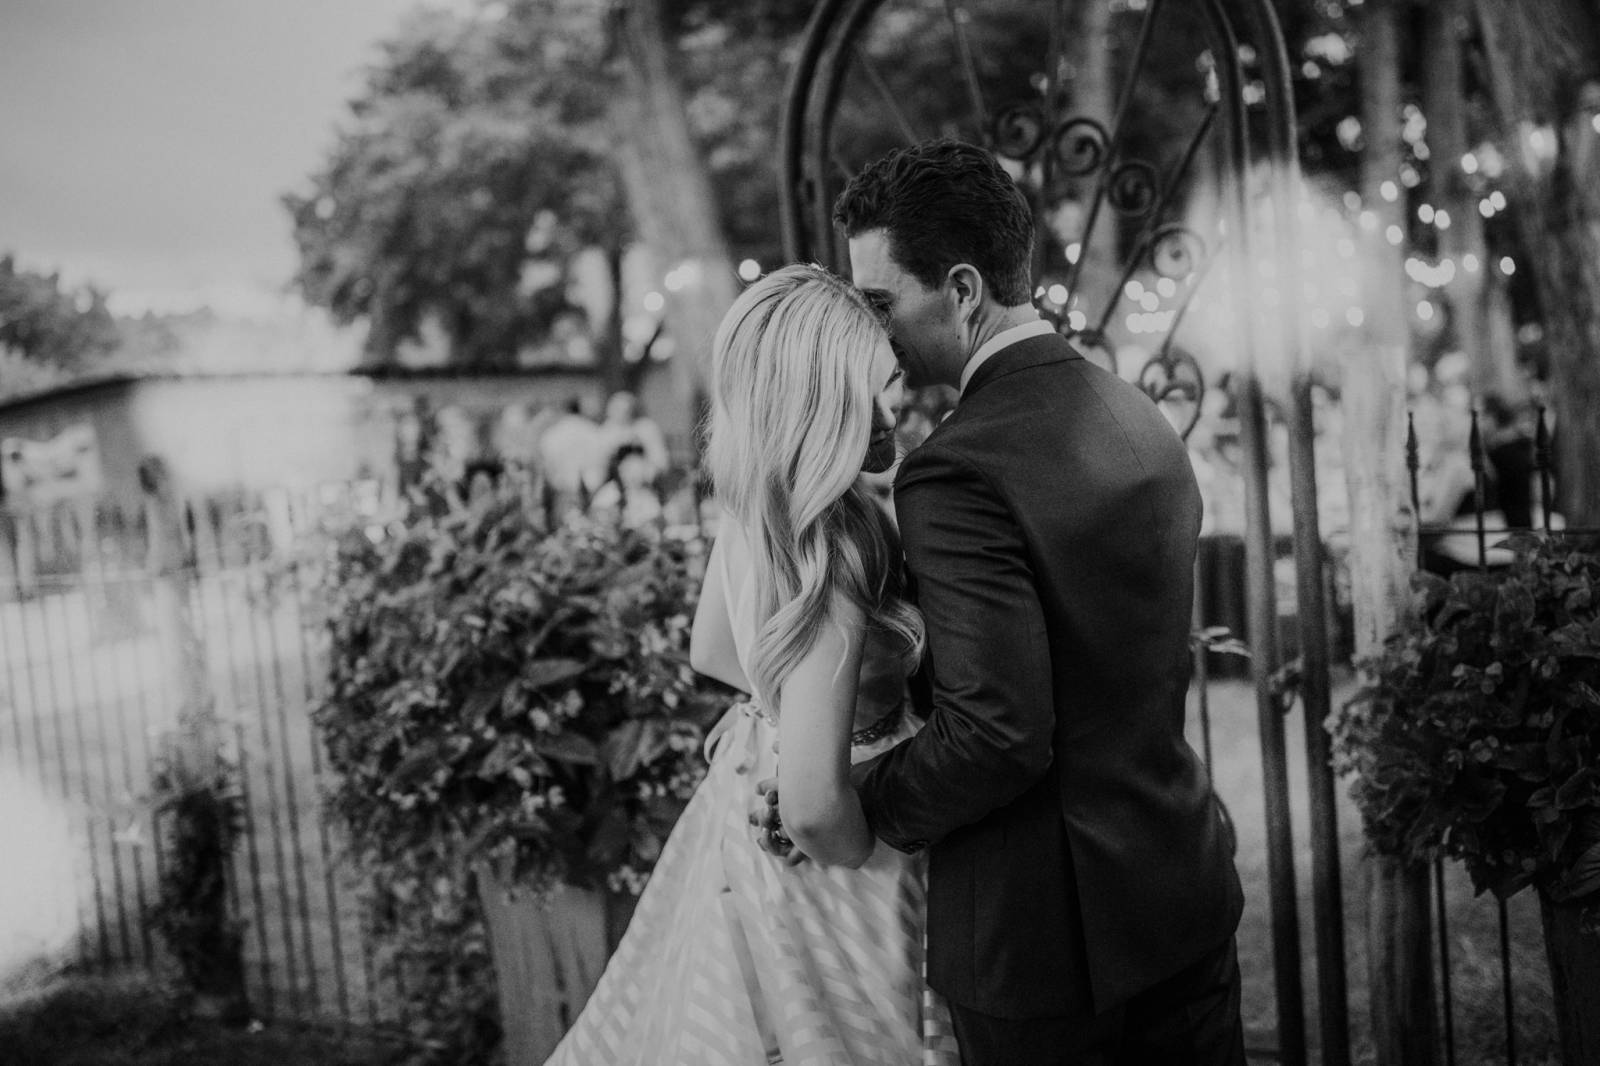 classic black and white wedding portrait captured by Albuquerque photographer Blue Rose Photography